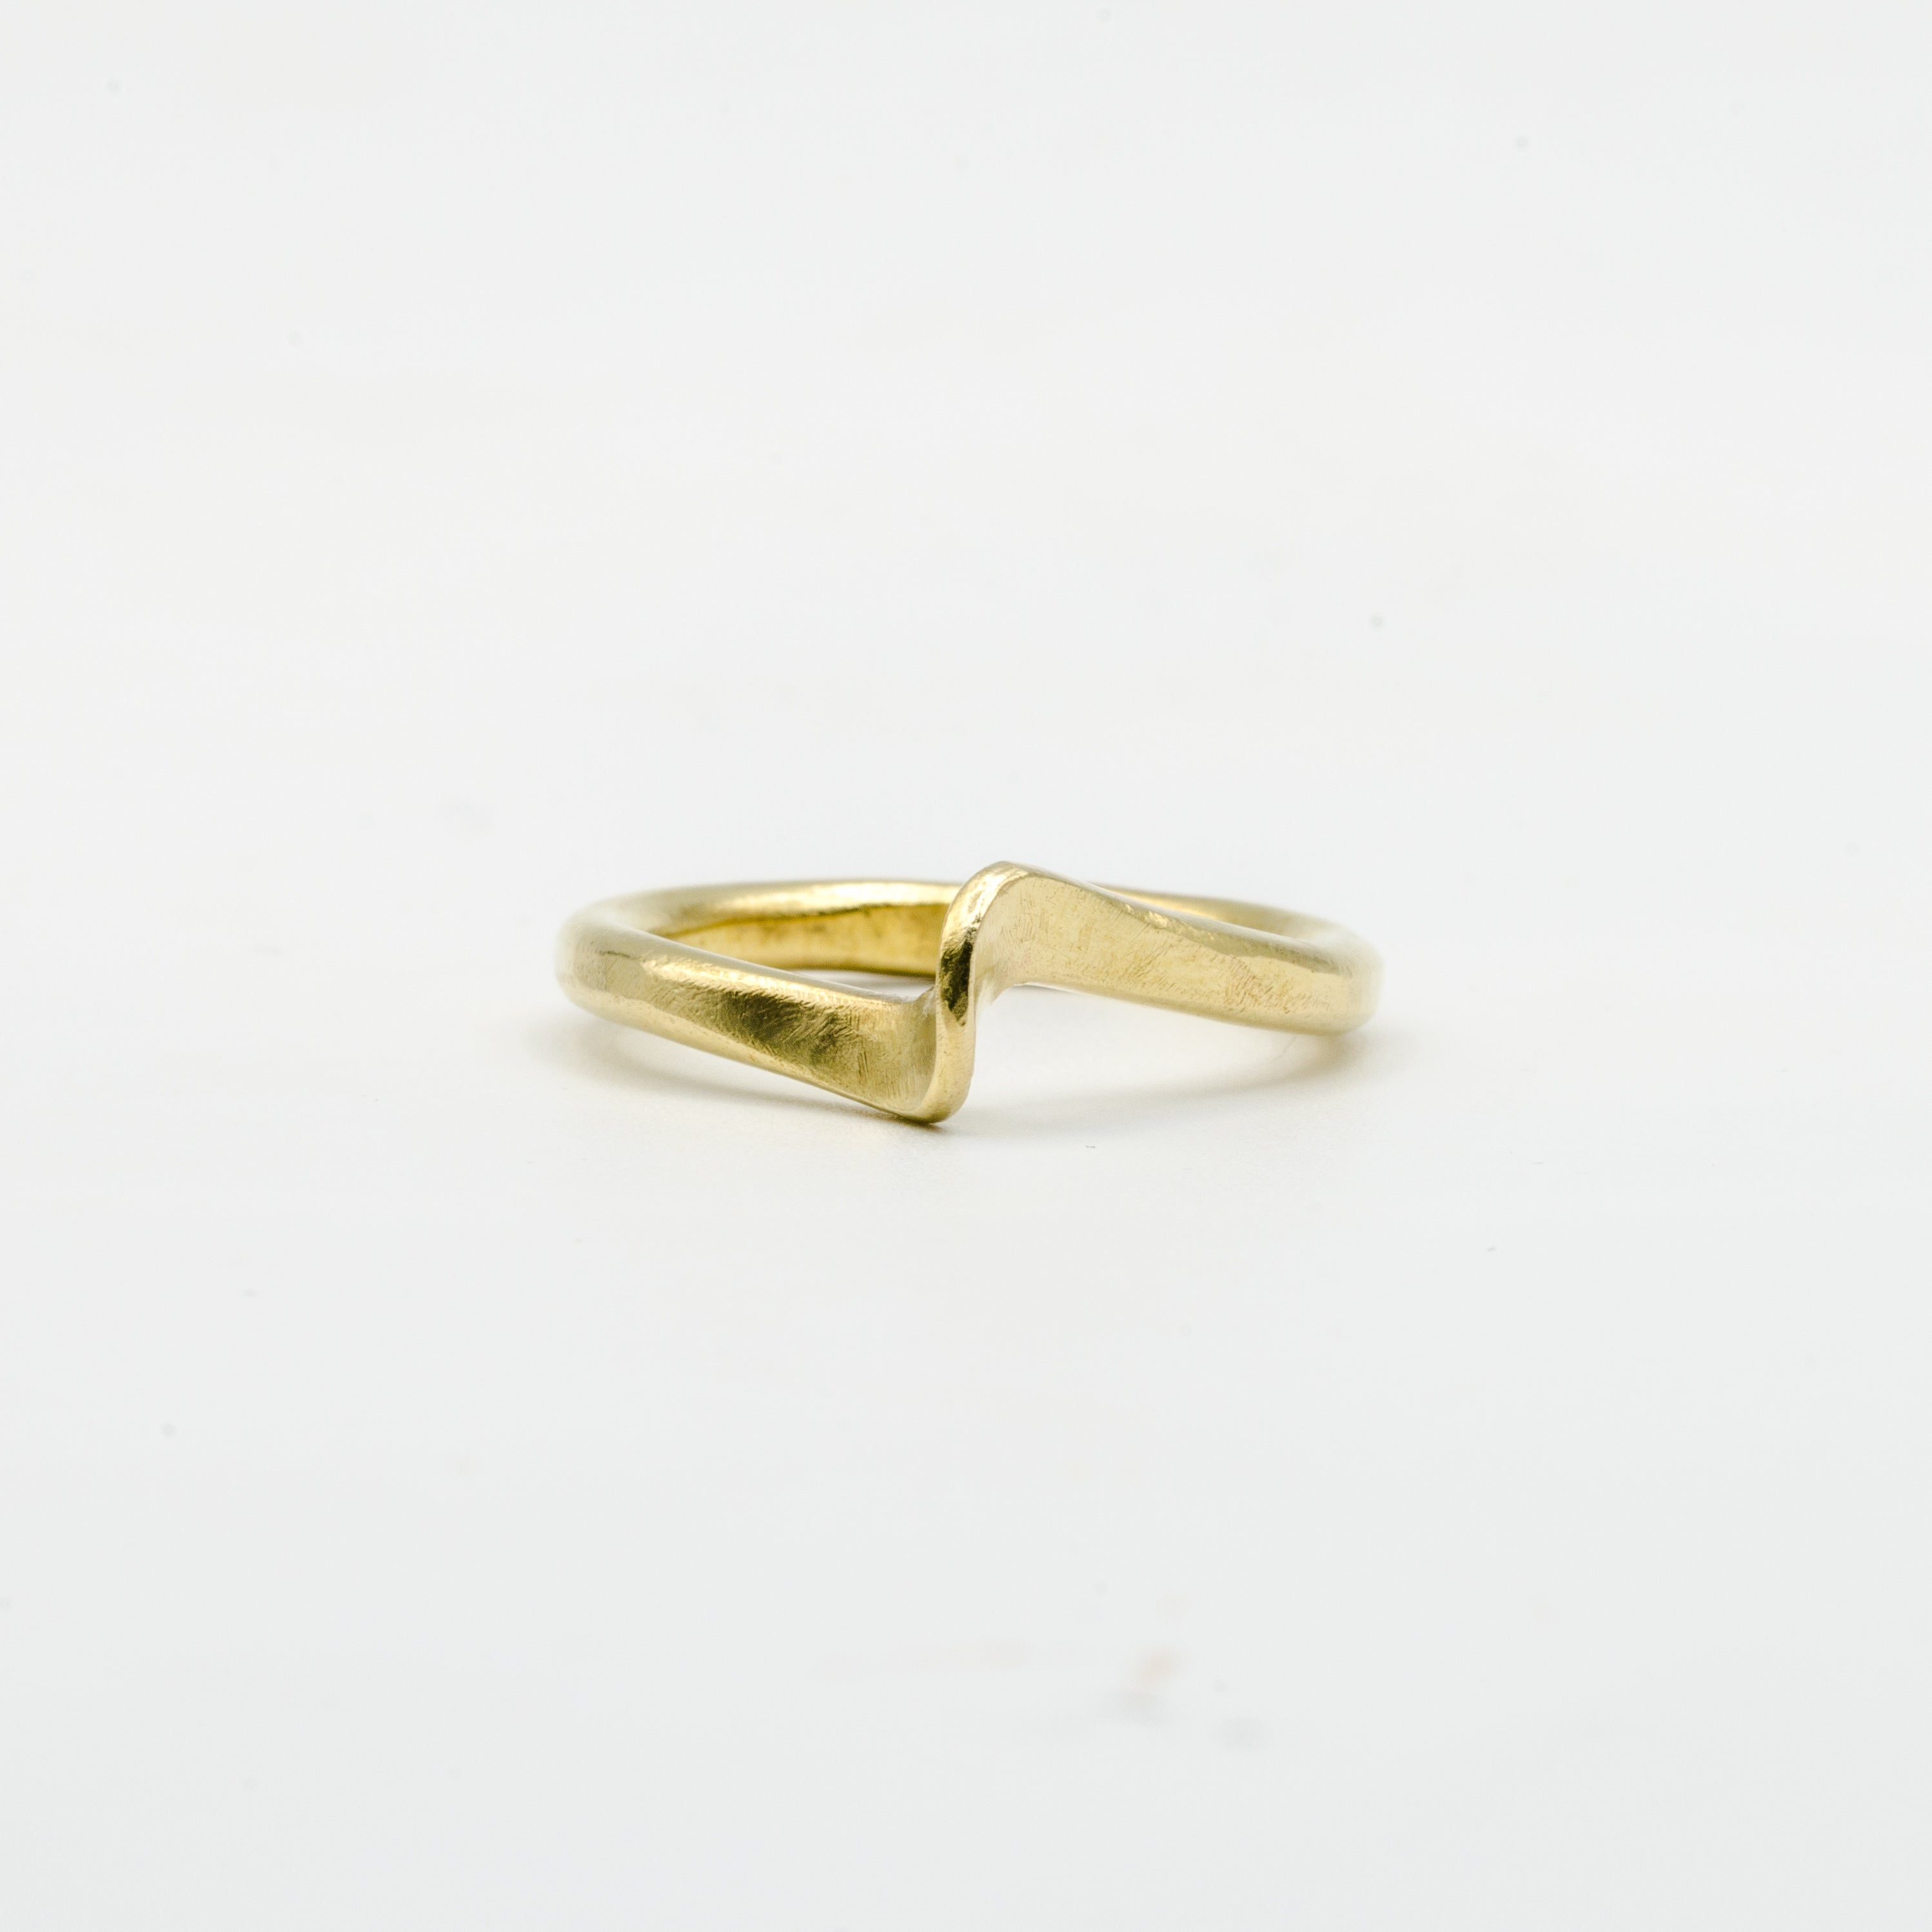 hand forged curved brass ring on white background